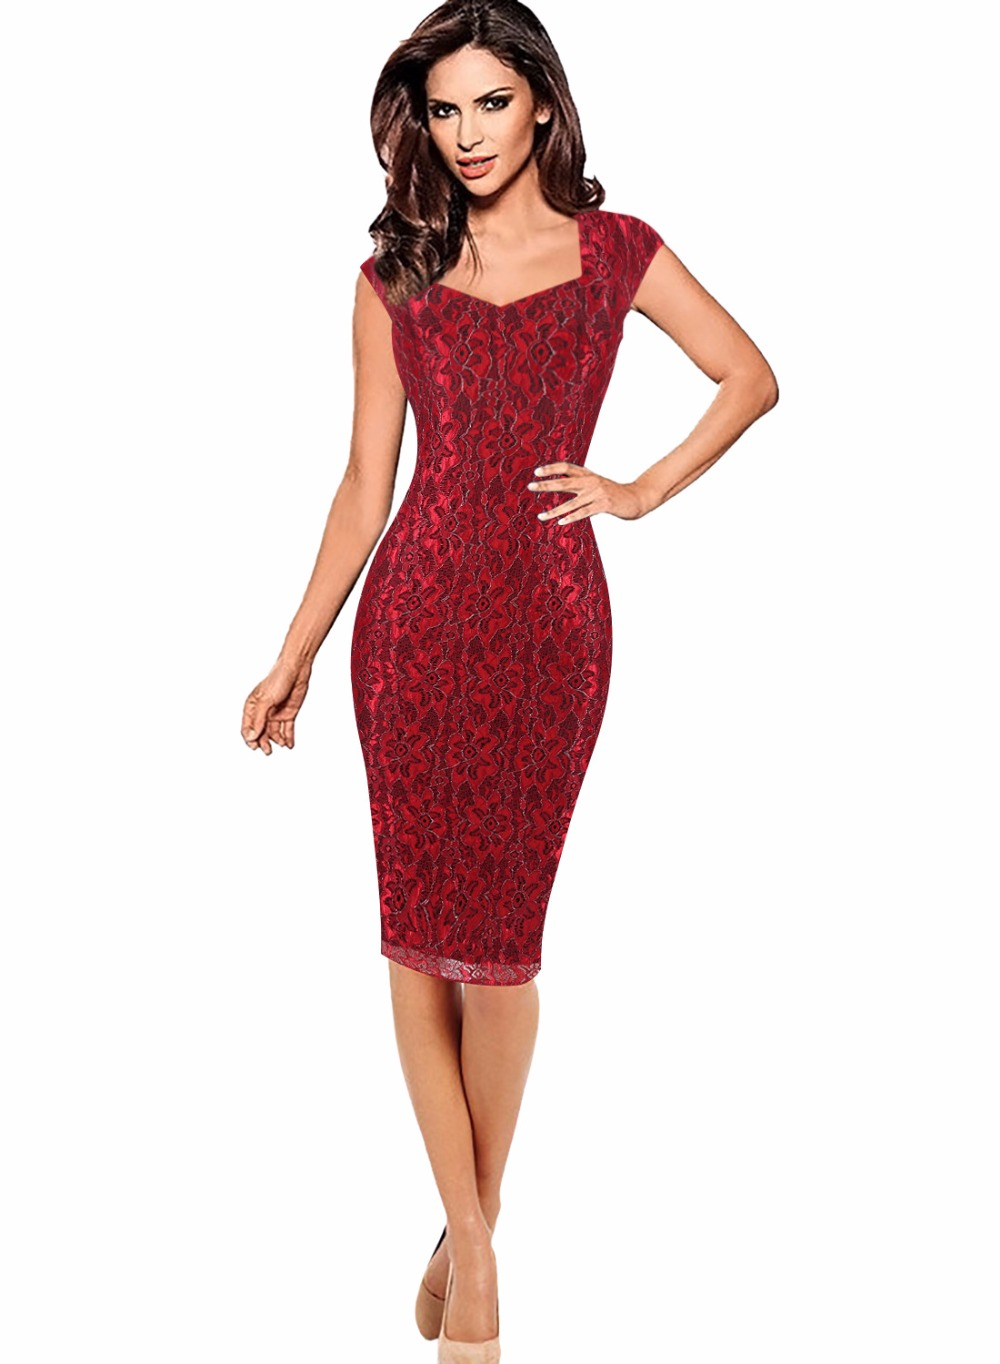 Yudian Trade Company New Design Sleeveless embroidery flowe lace slim pencil knee dress Vestido Lady vintage Party Elegant Sheath career dresses